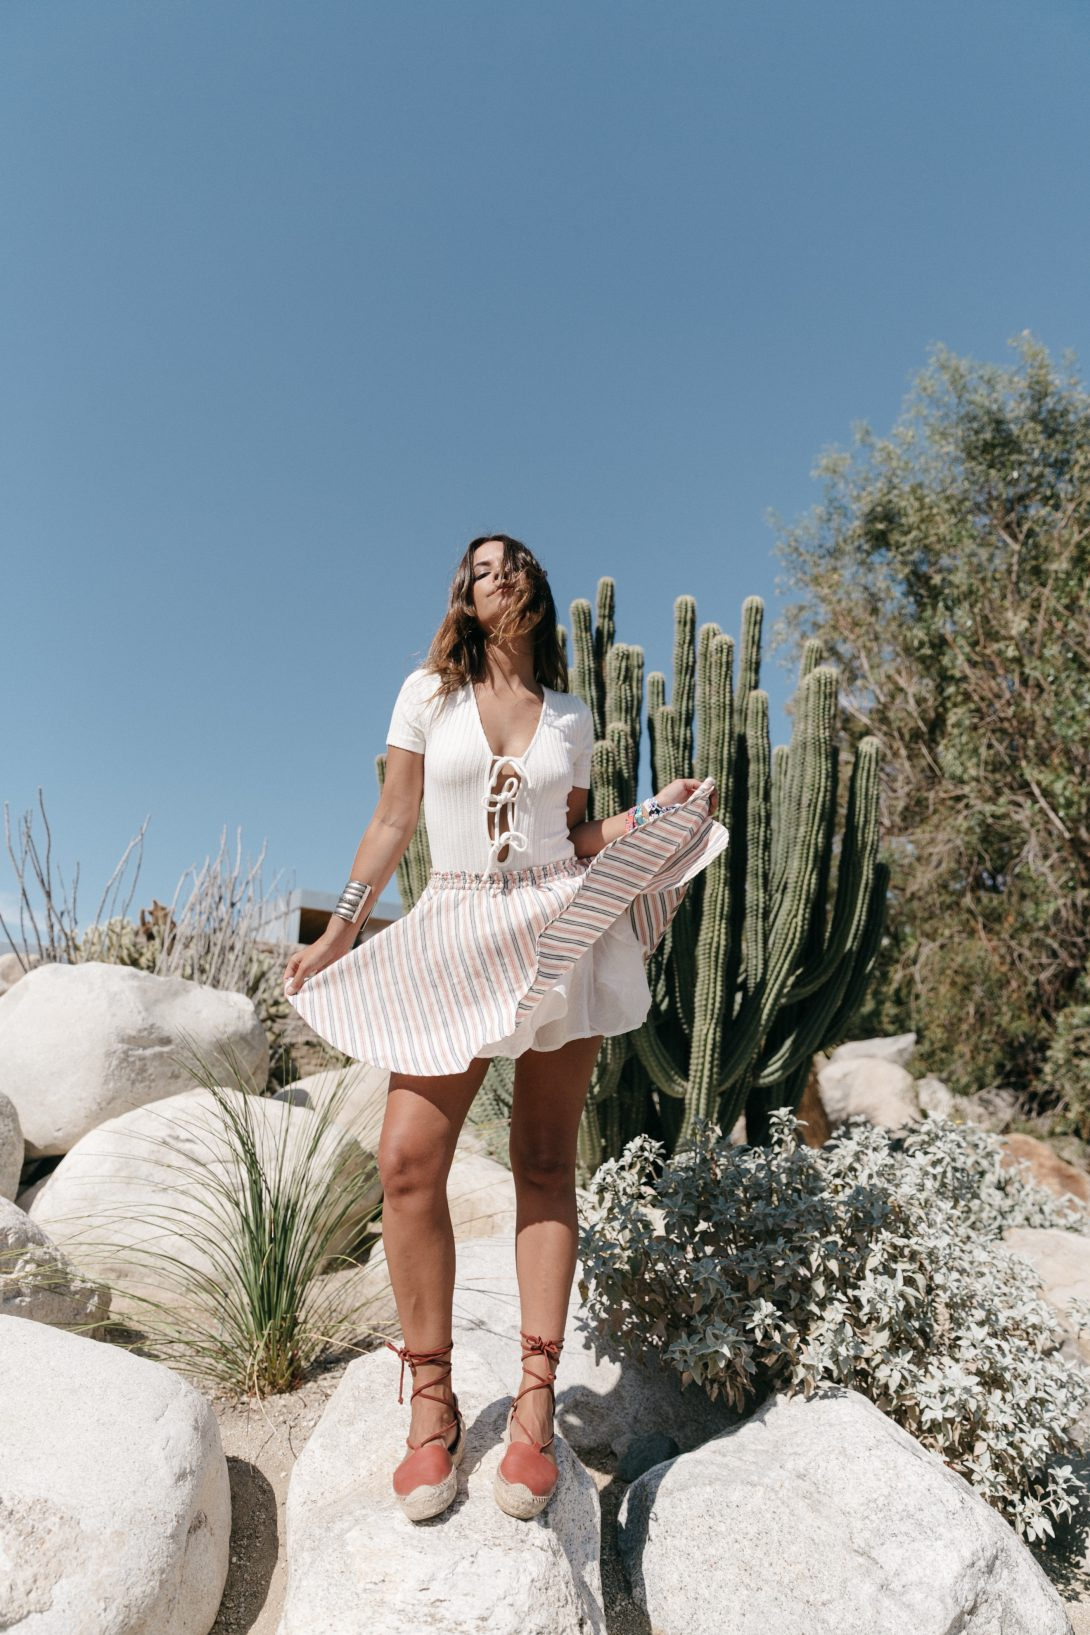 Lace_Up_Body-Privacy_Please-Revolve_Clothing-Striped_Mini_Skirt-Soludos_Espadrilles-Palm_Springs-Outfit-Collage_Vintage-52